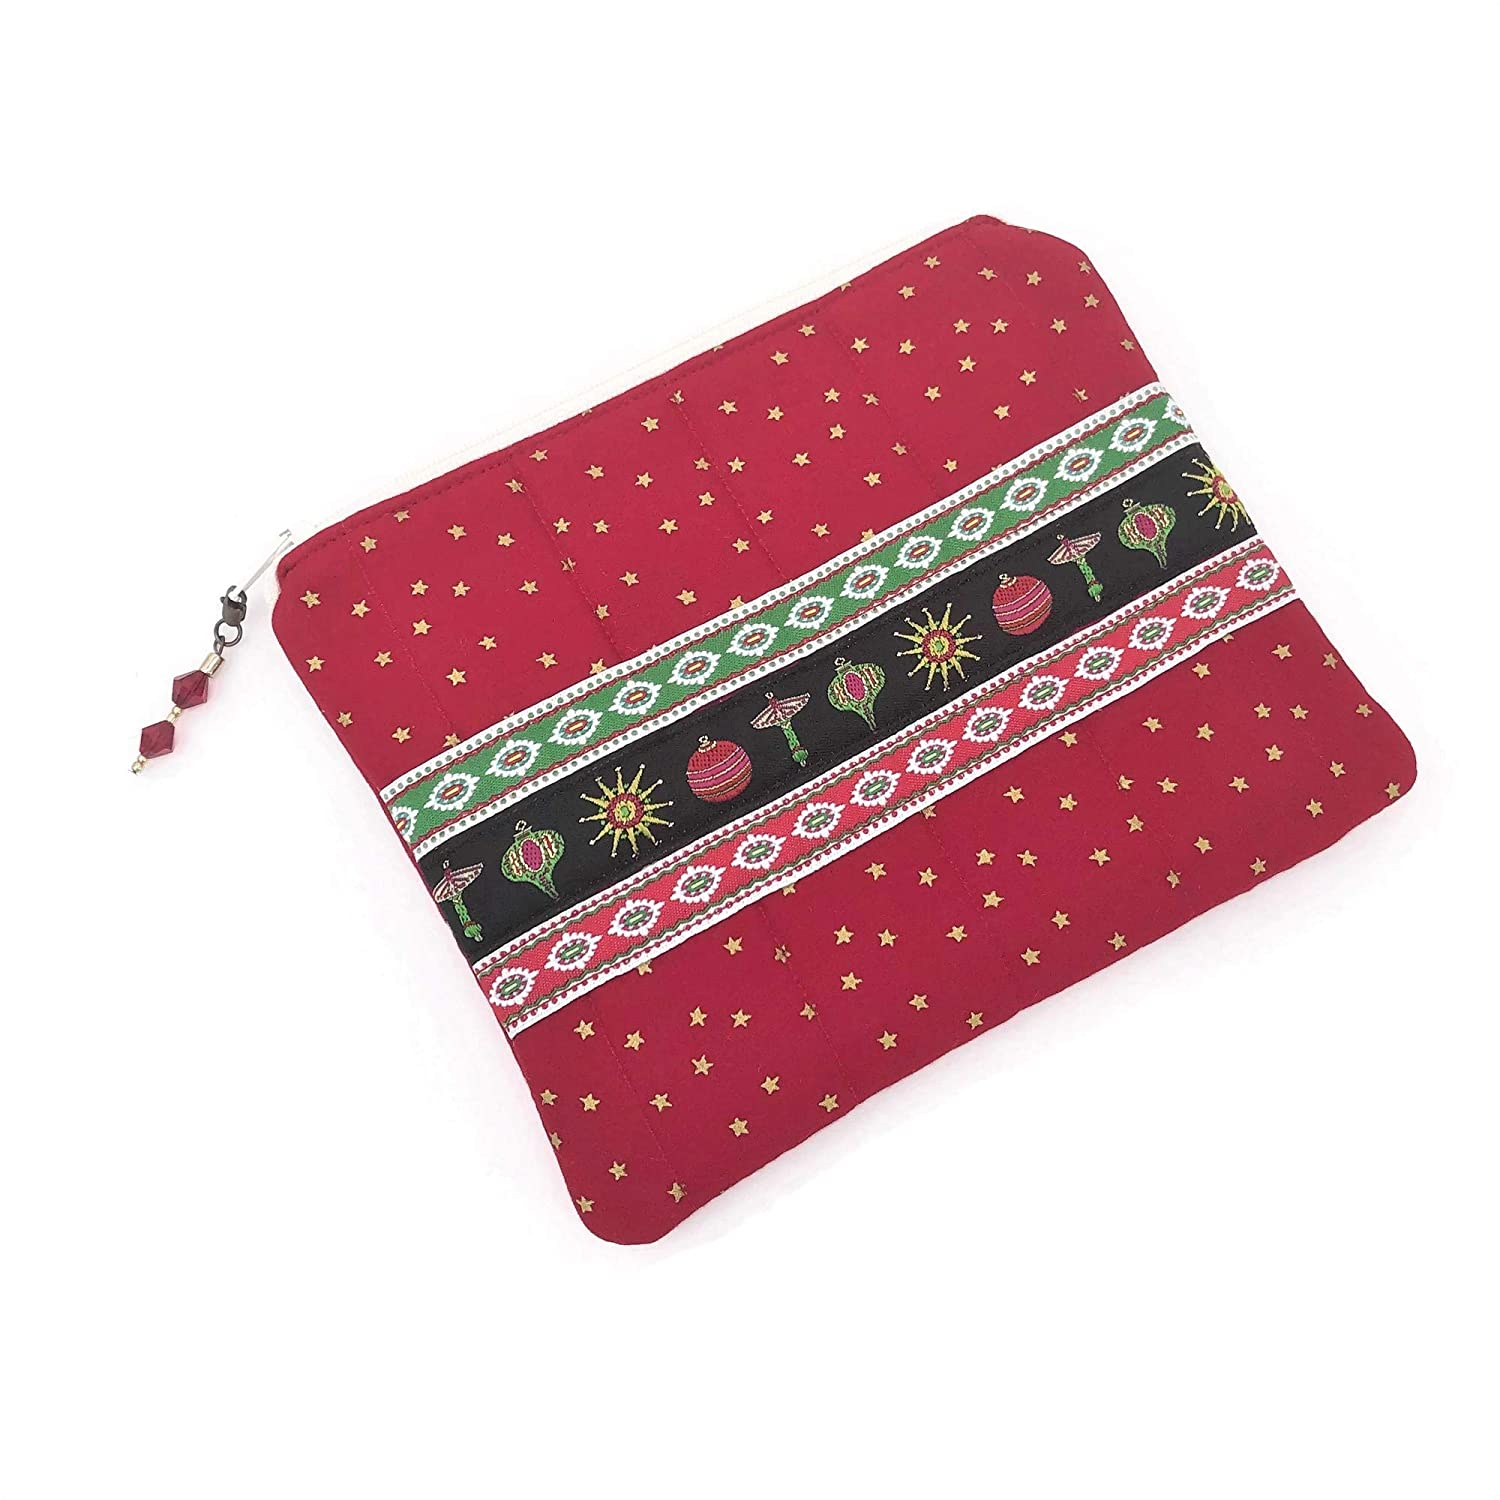 Christmas Purse Cosmetic Bag Makeup Pouch Popular popular Max 53% OFF Toiletry